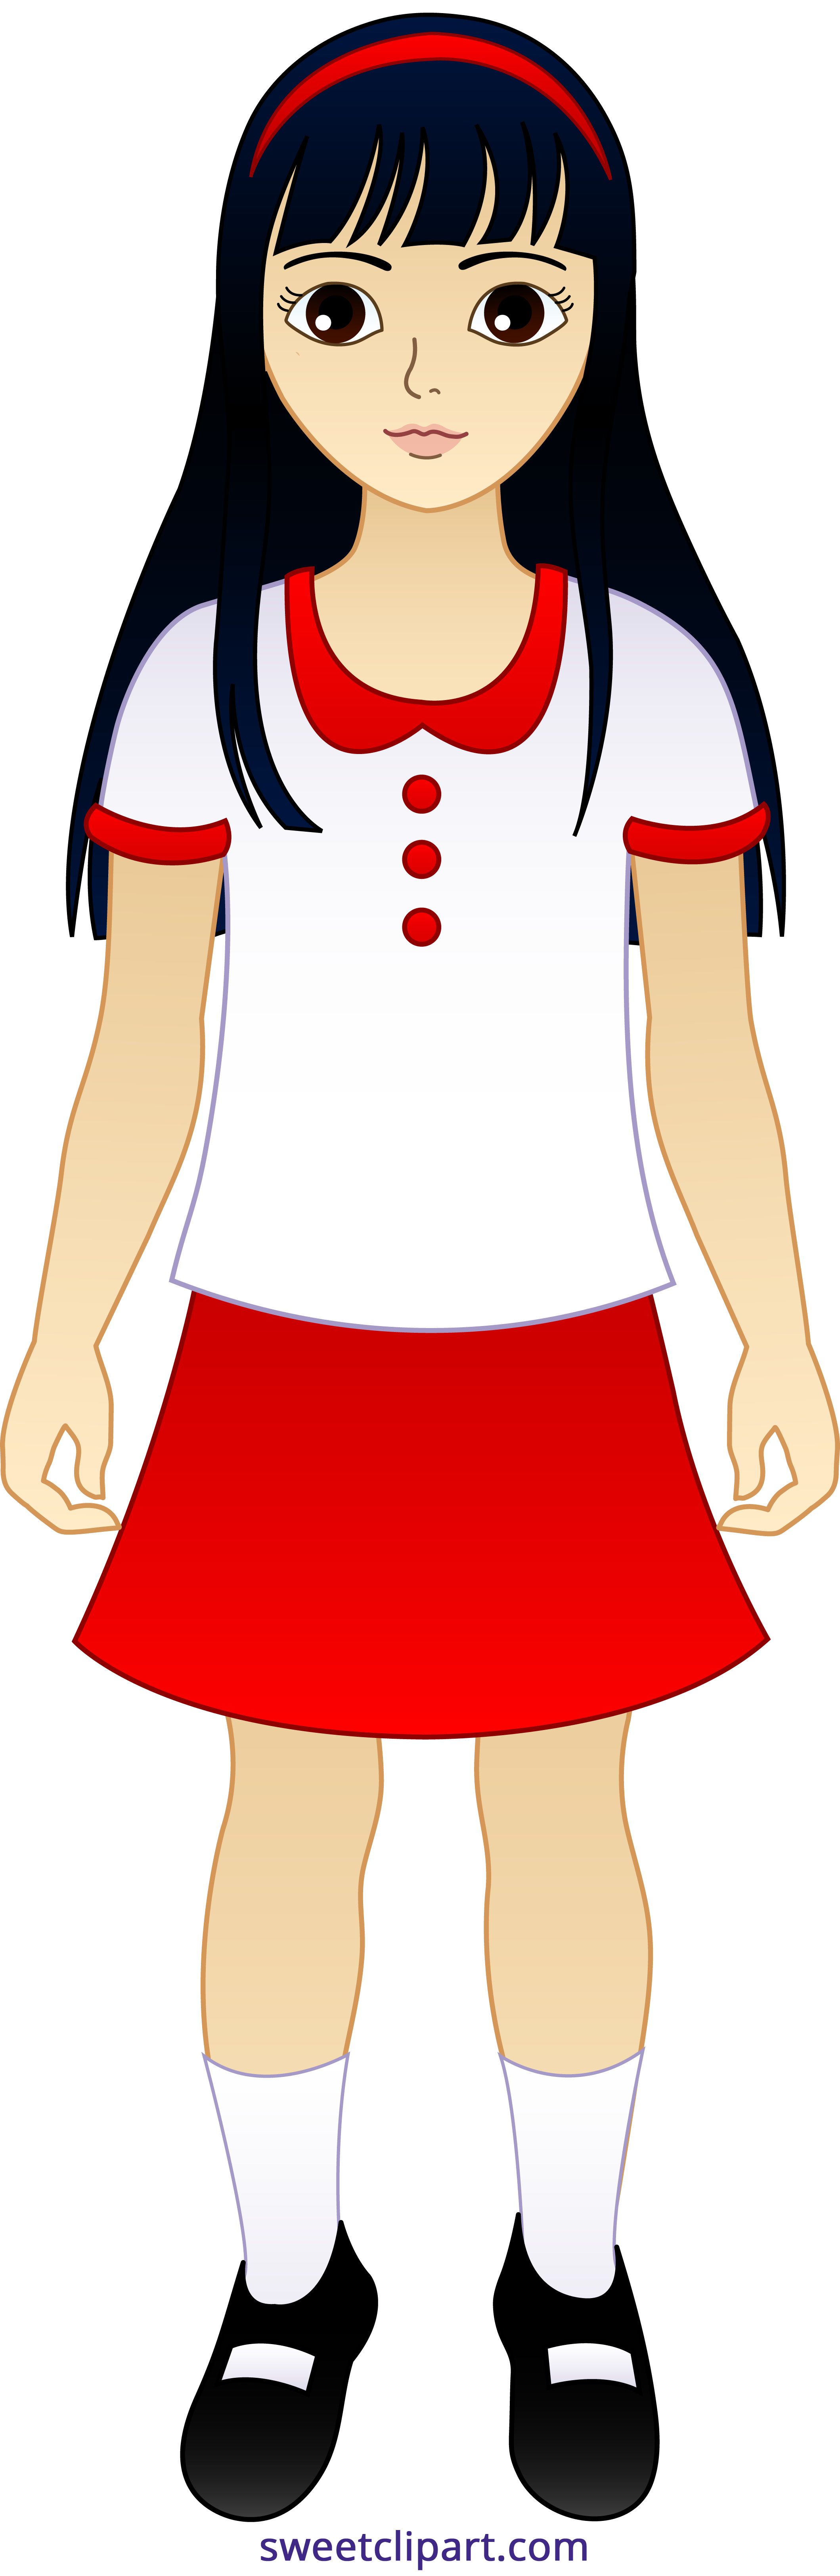 pretty girl clipart at getdrawings com free for personal use rh getdrawings com pretty blonde girl clipart pretty little girl clipart